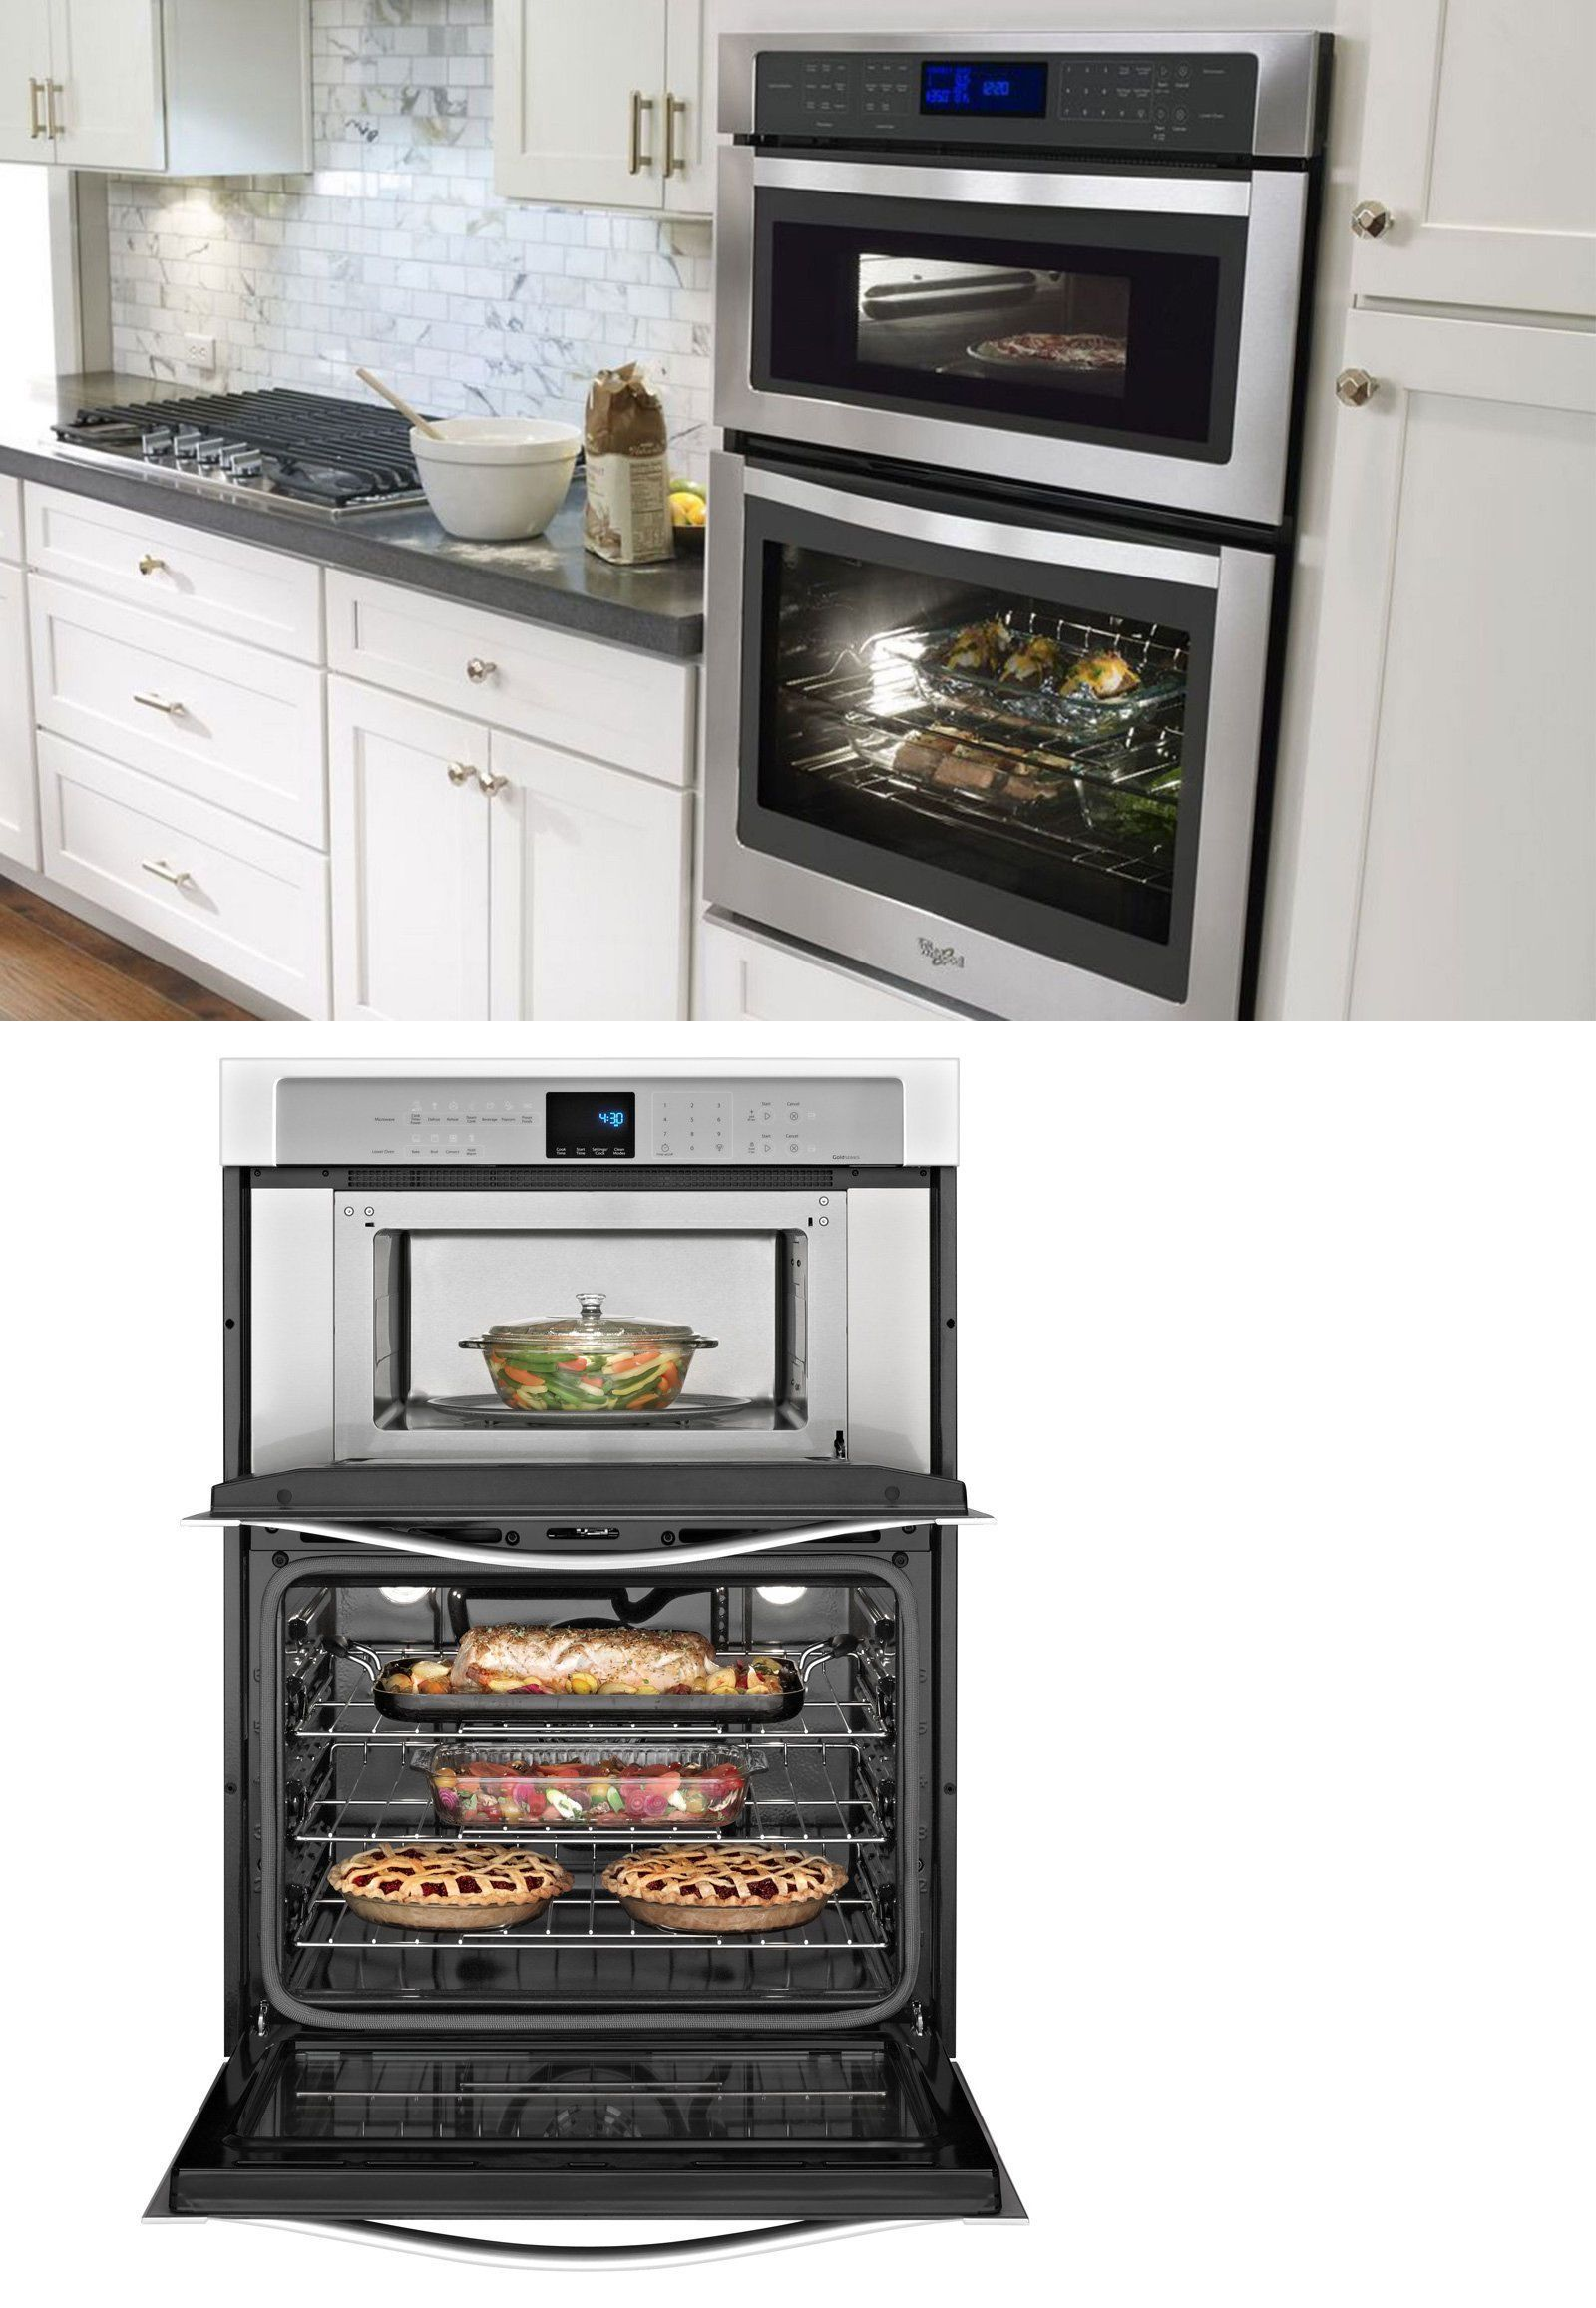 wall ovens 71318 whirlpool gold woc54ec0as 30 inch on wall ovens id=31042